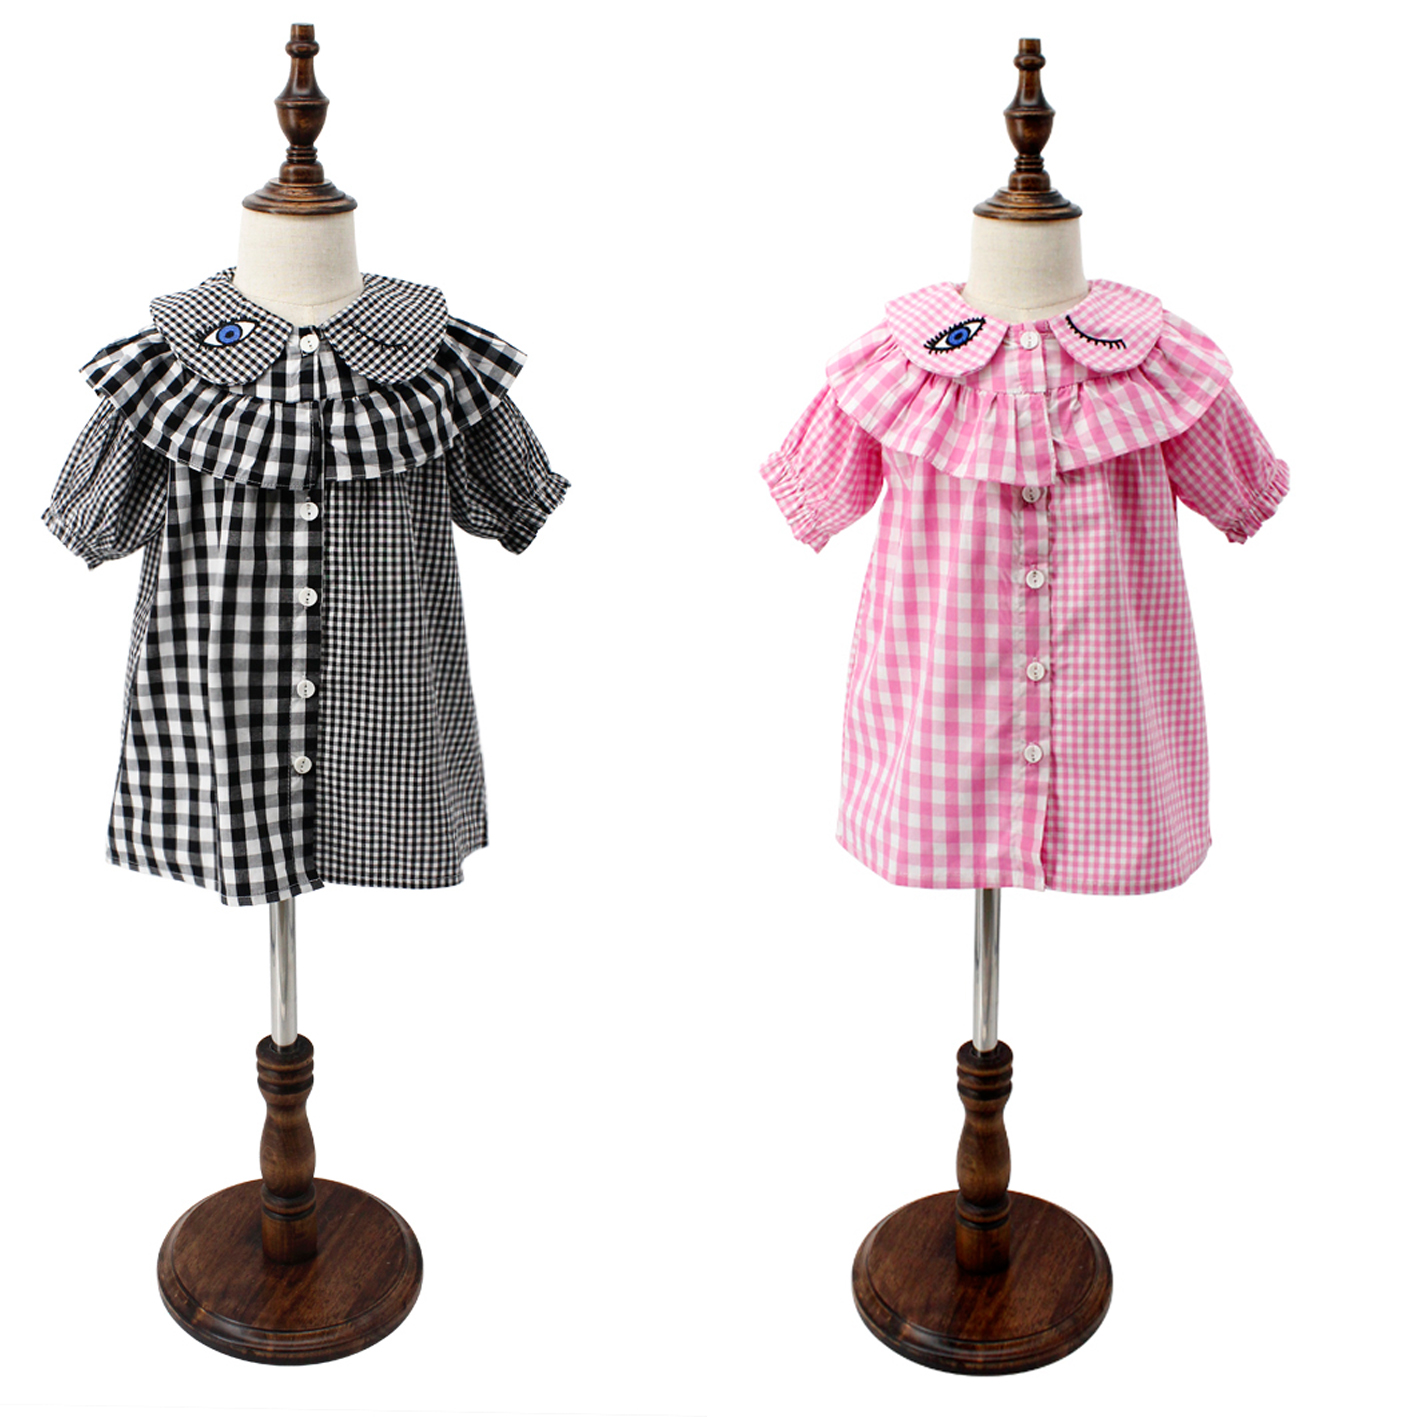 Buy kids smocked dresses and free shipping on AliExpress